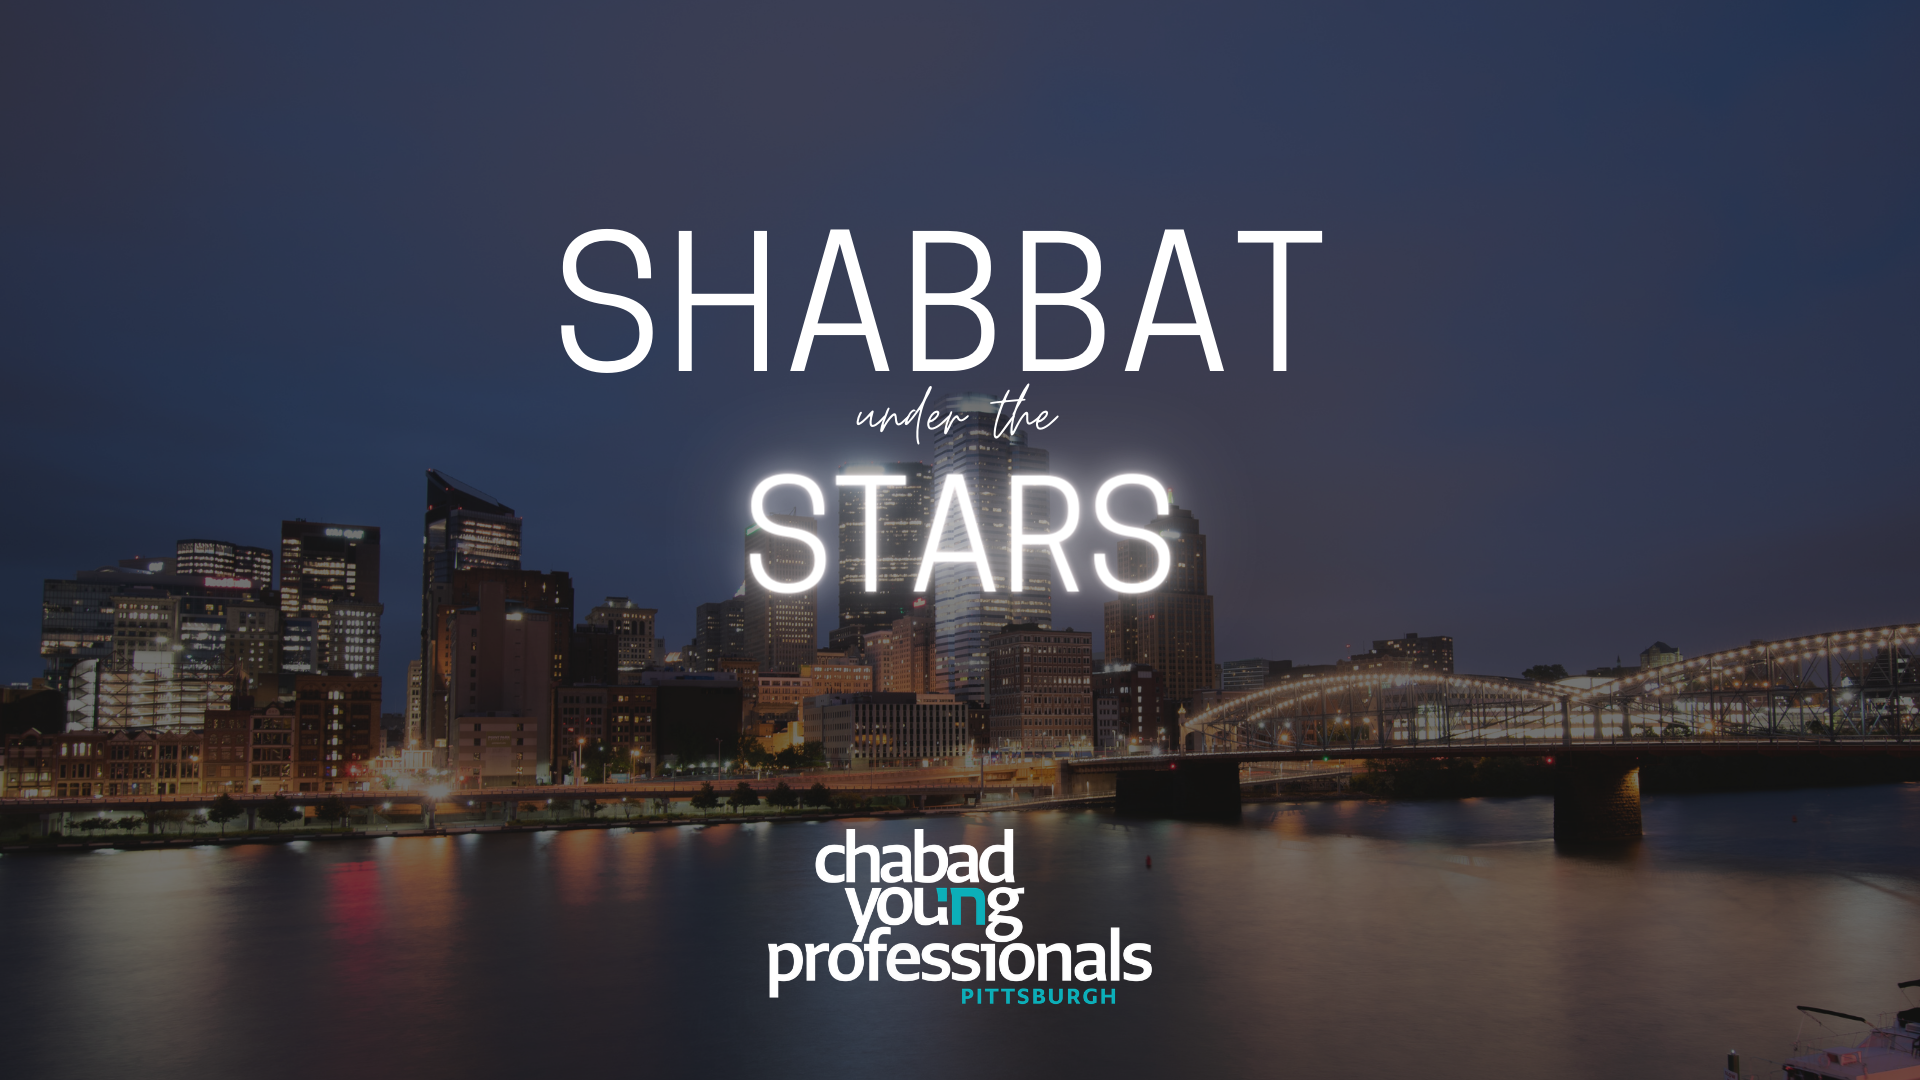 Copy%20of%20%20Shabbat%20Under%20the%20stars%20FB%20Photo.png